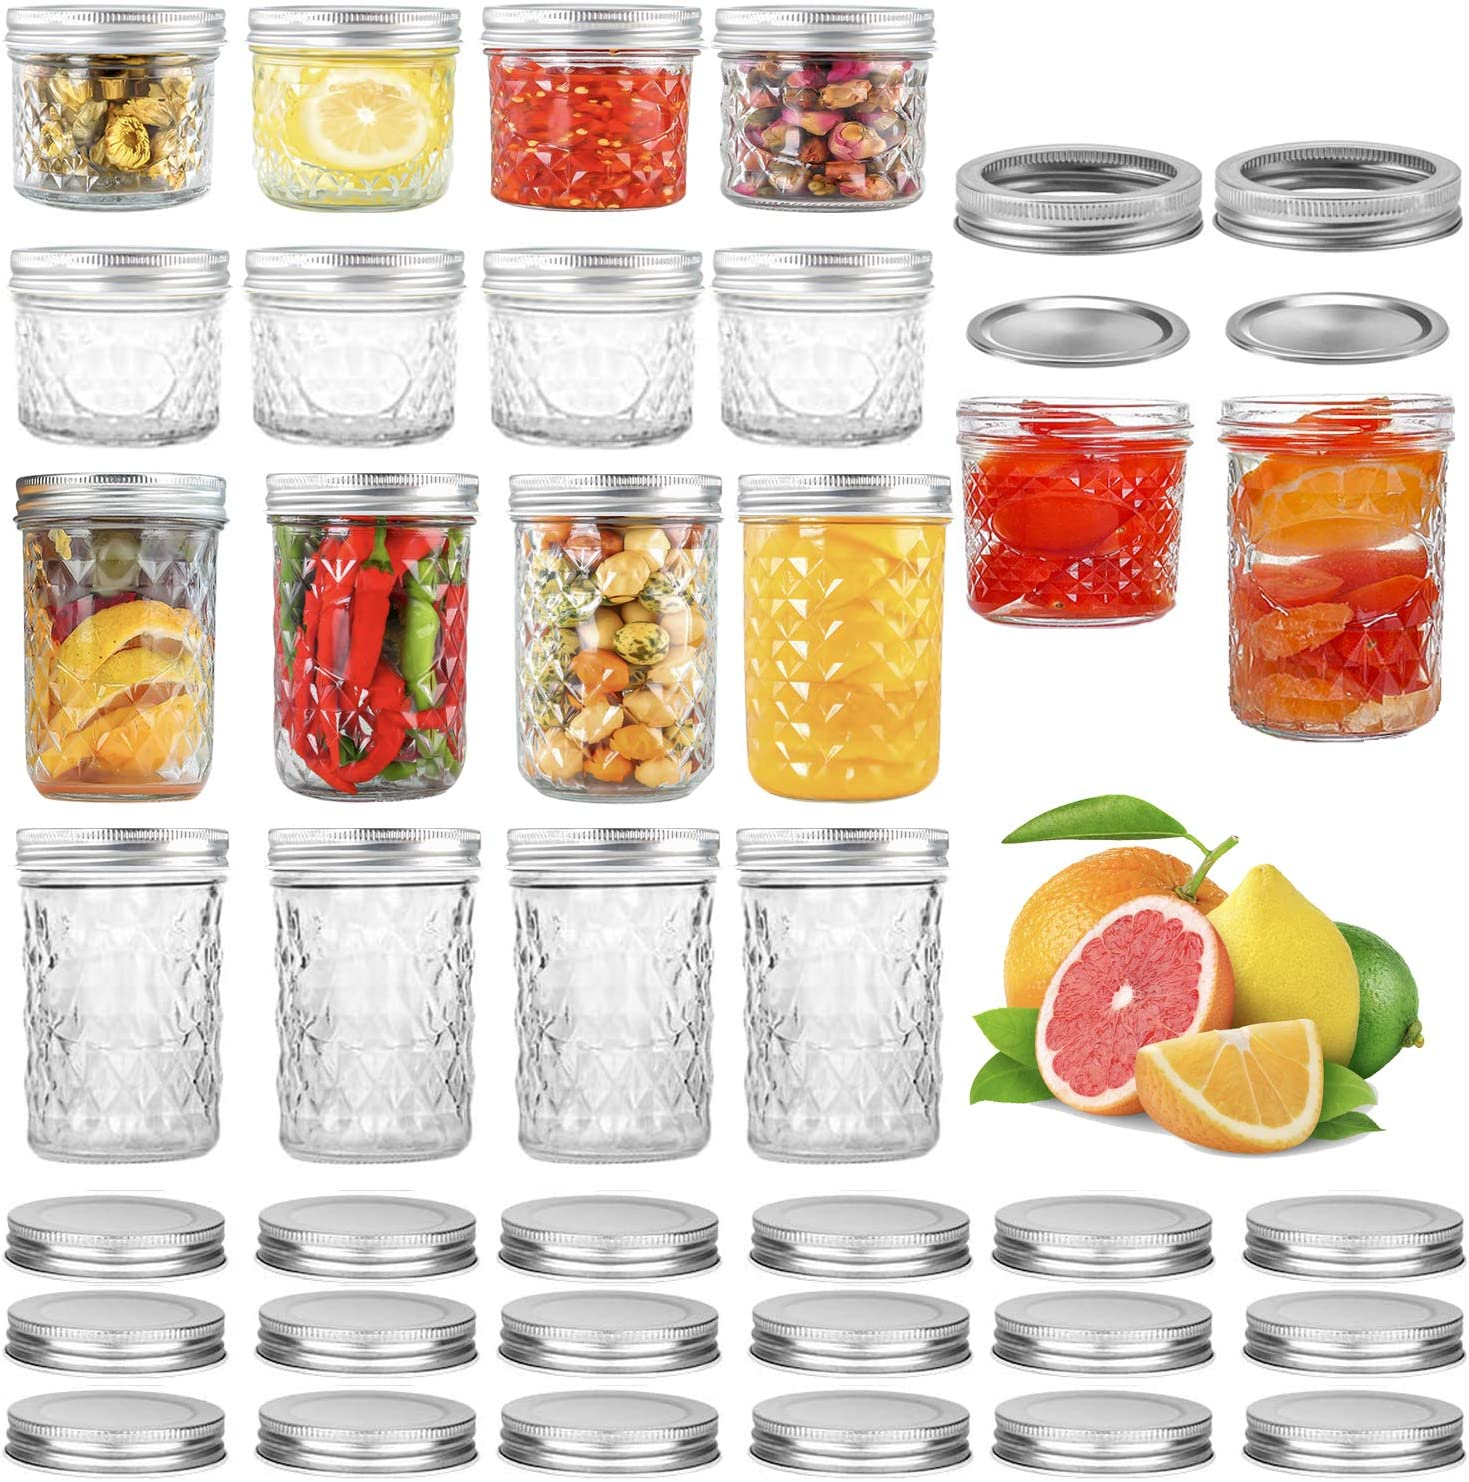 16 Pack In a popularity Mason Jars Regular 4 Mouth 8 oz Super special price